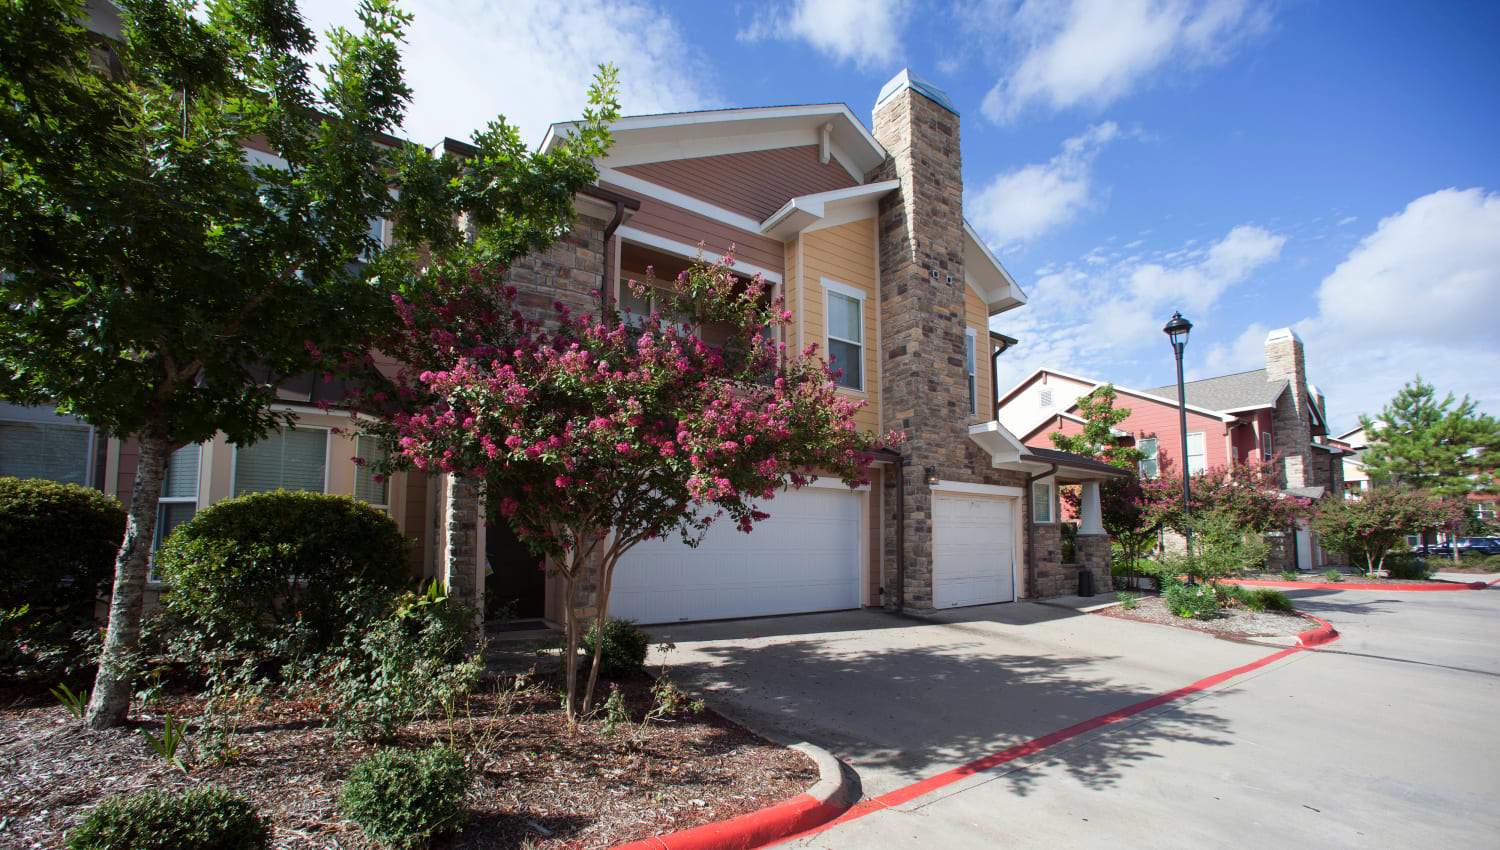 Well-maintained landscaping outside townhomes at Olympus Katy Ranch in Katy, Texas